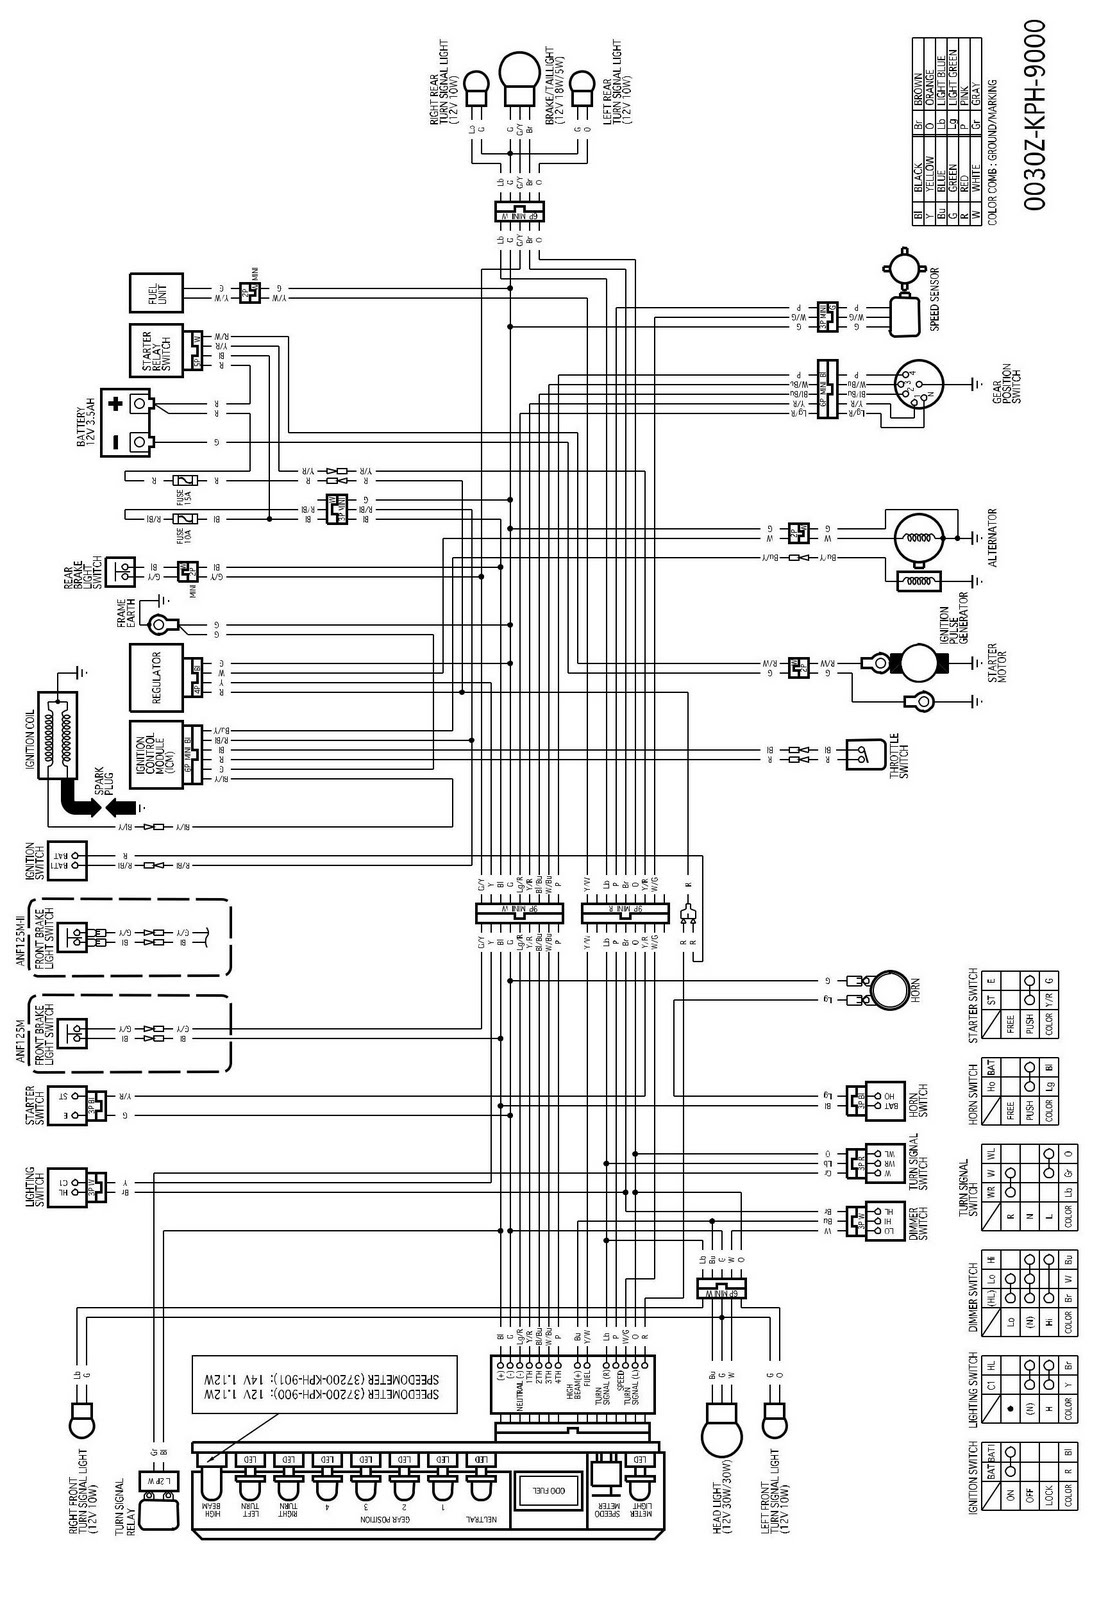 Yamaha Grizzly 700 Fi Wiring Diagram Wiring